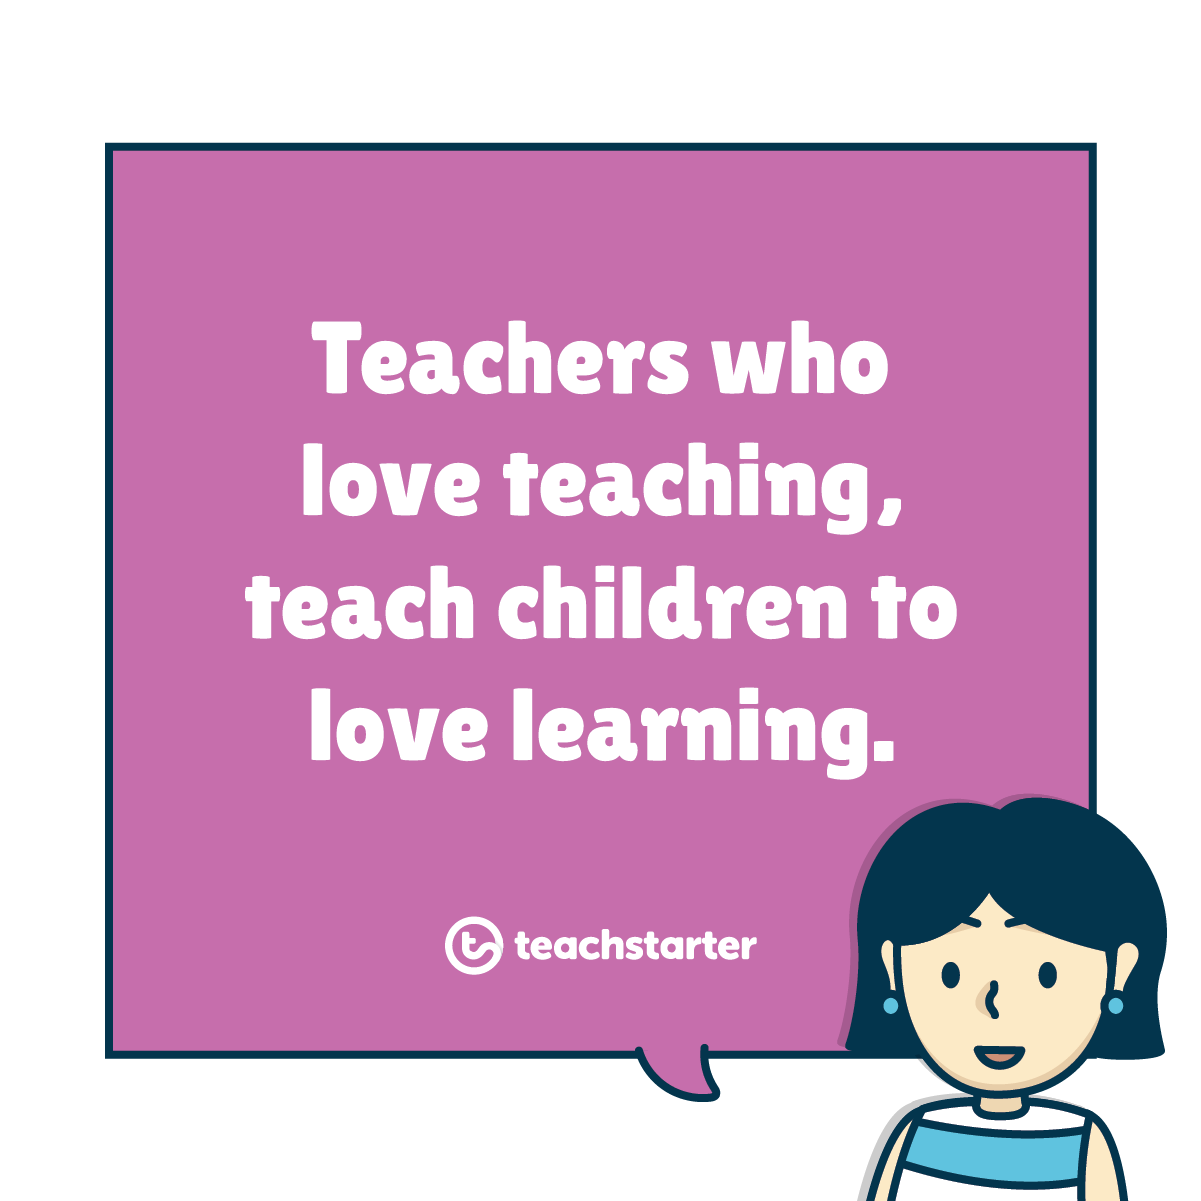 Lovely Teacher Quotes: 10 Inspirational Quotes For Teachers